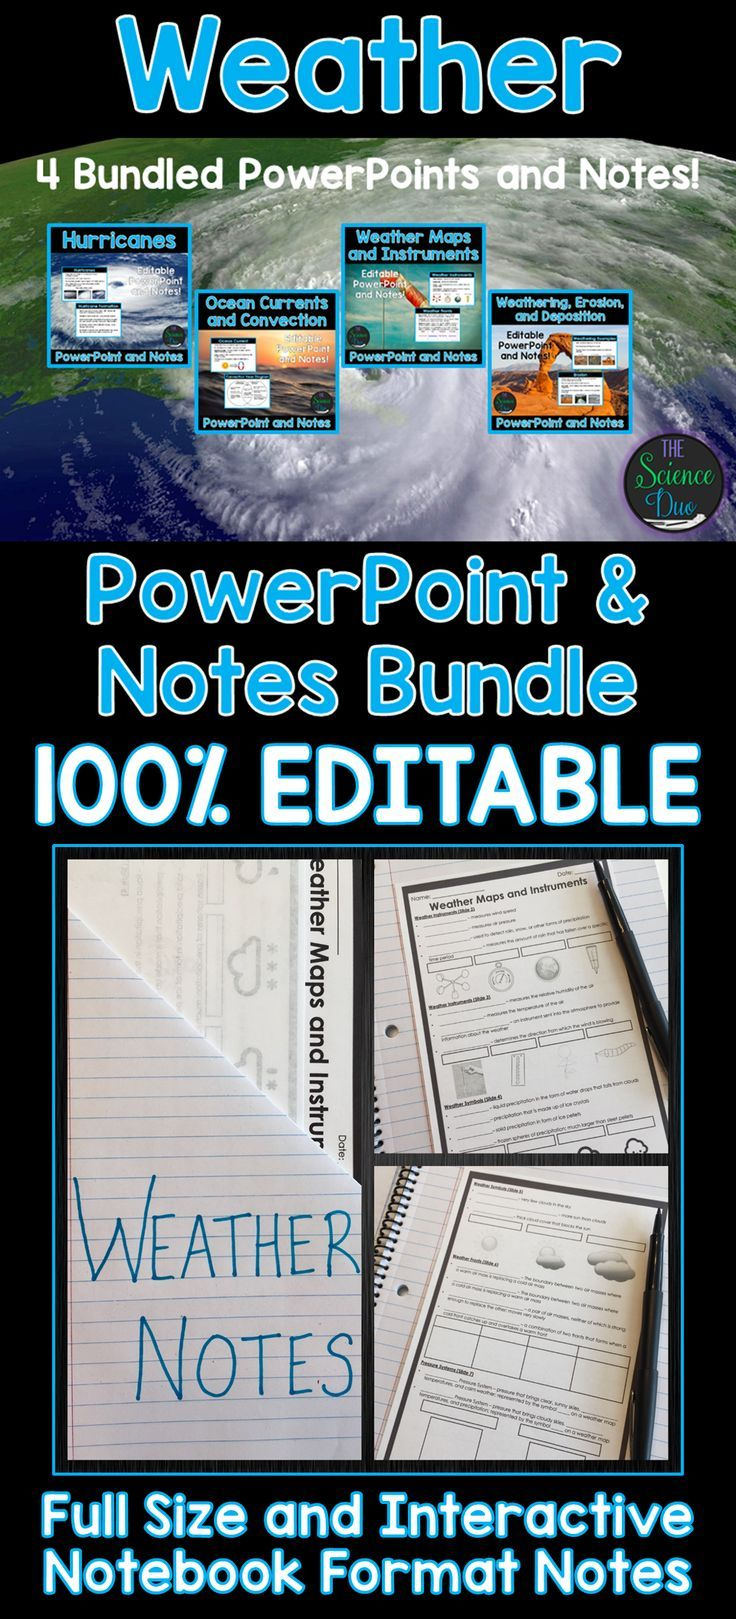 Introduce important Weather concepts to your students with this PowerPoint and notes bundle! Hurricane Formation, Ocean Currents and Convection, Weather Maps and Instruments, and Weathering, Erosion, and Deposition is included in this bundle.